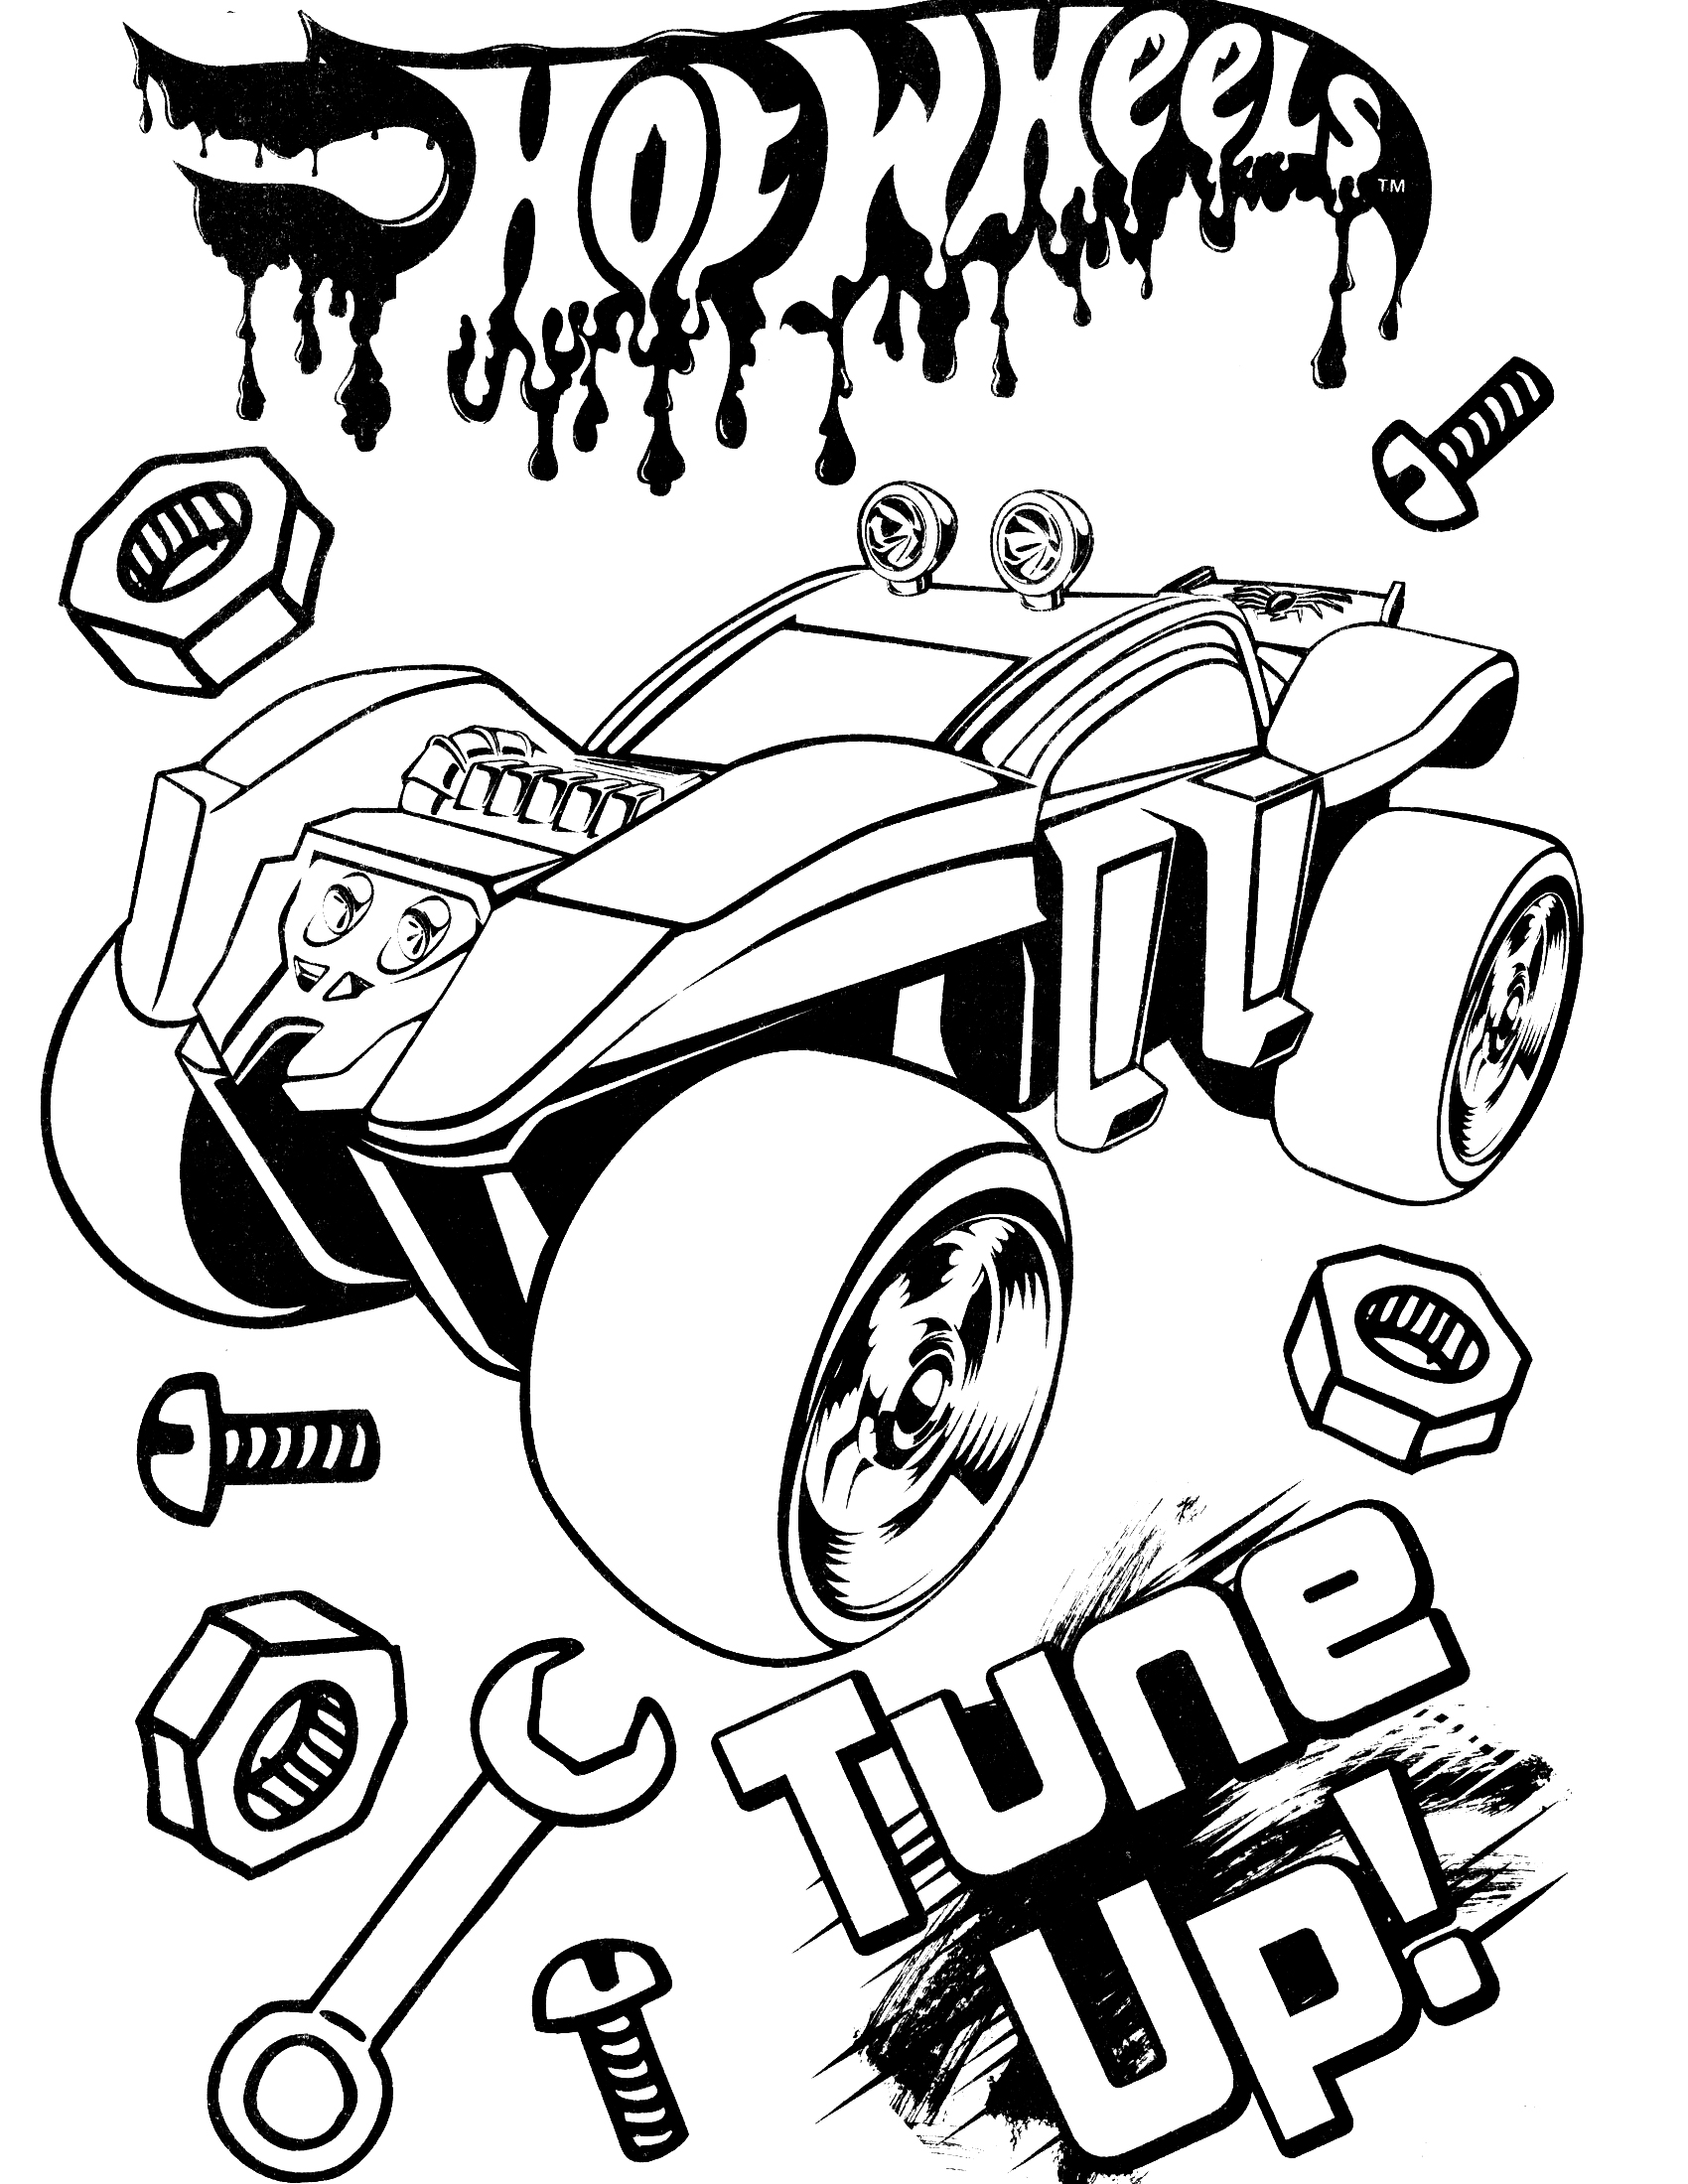 hotwheels coloring pages hot wheels racing league hot wheels coloring pages set 3 coloring pages hotwheels 1 1